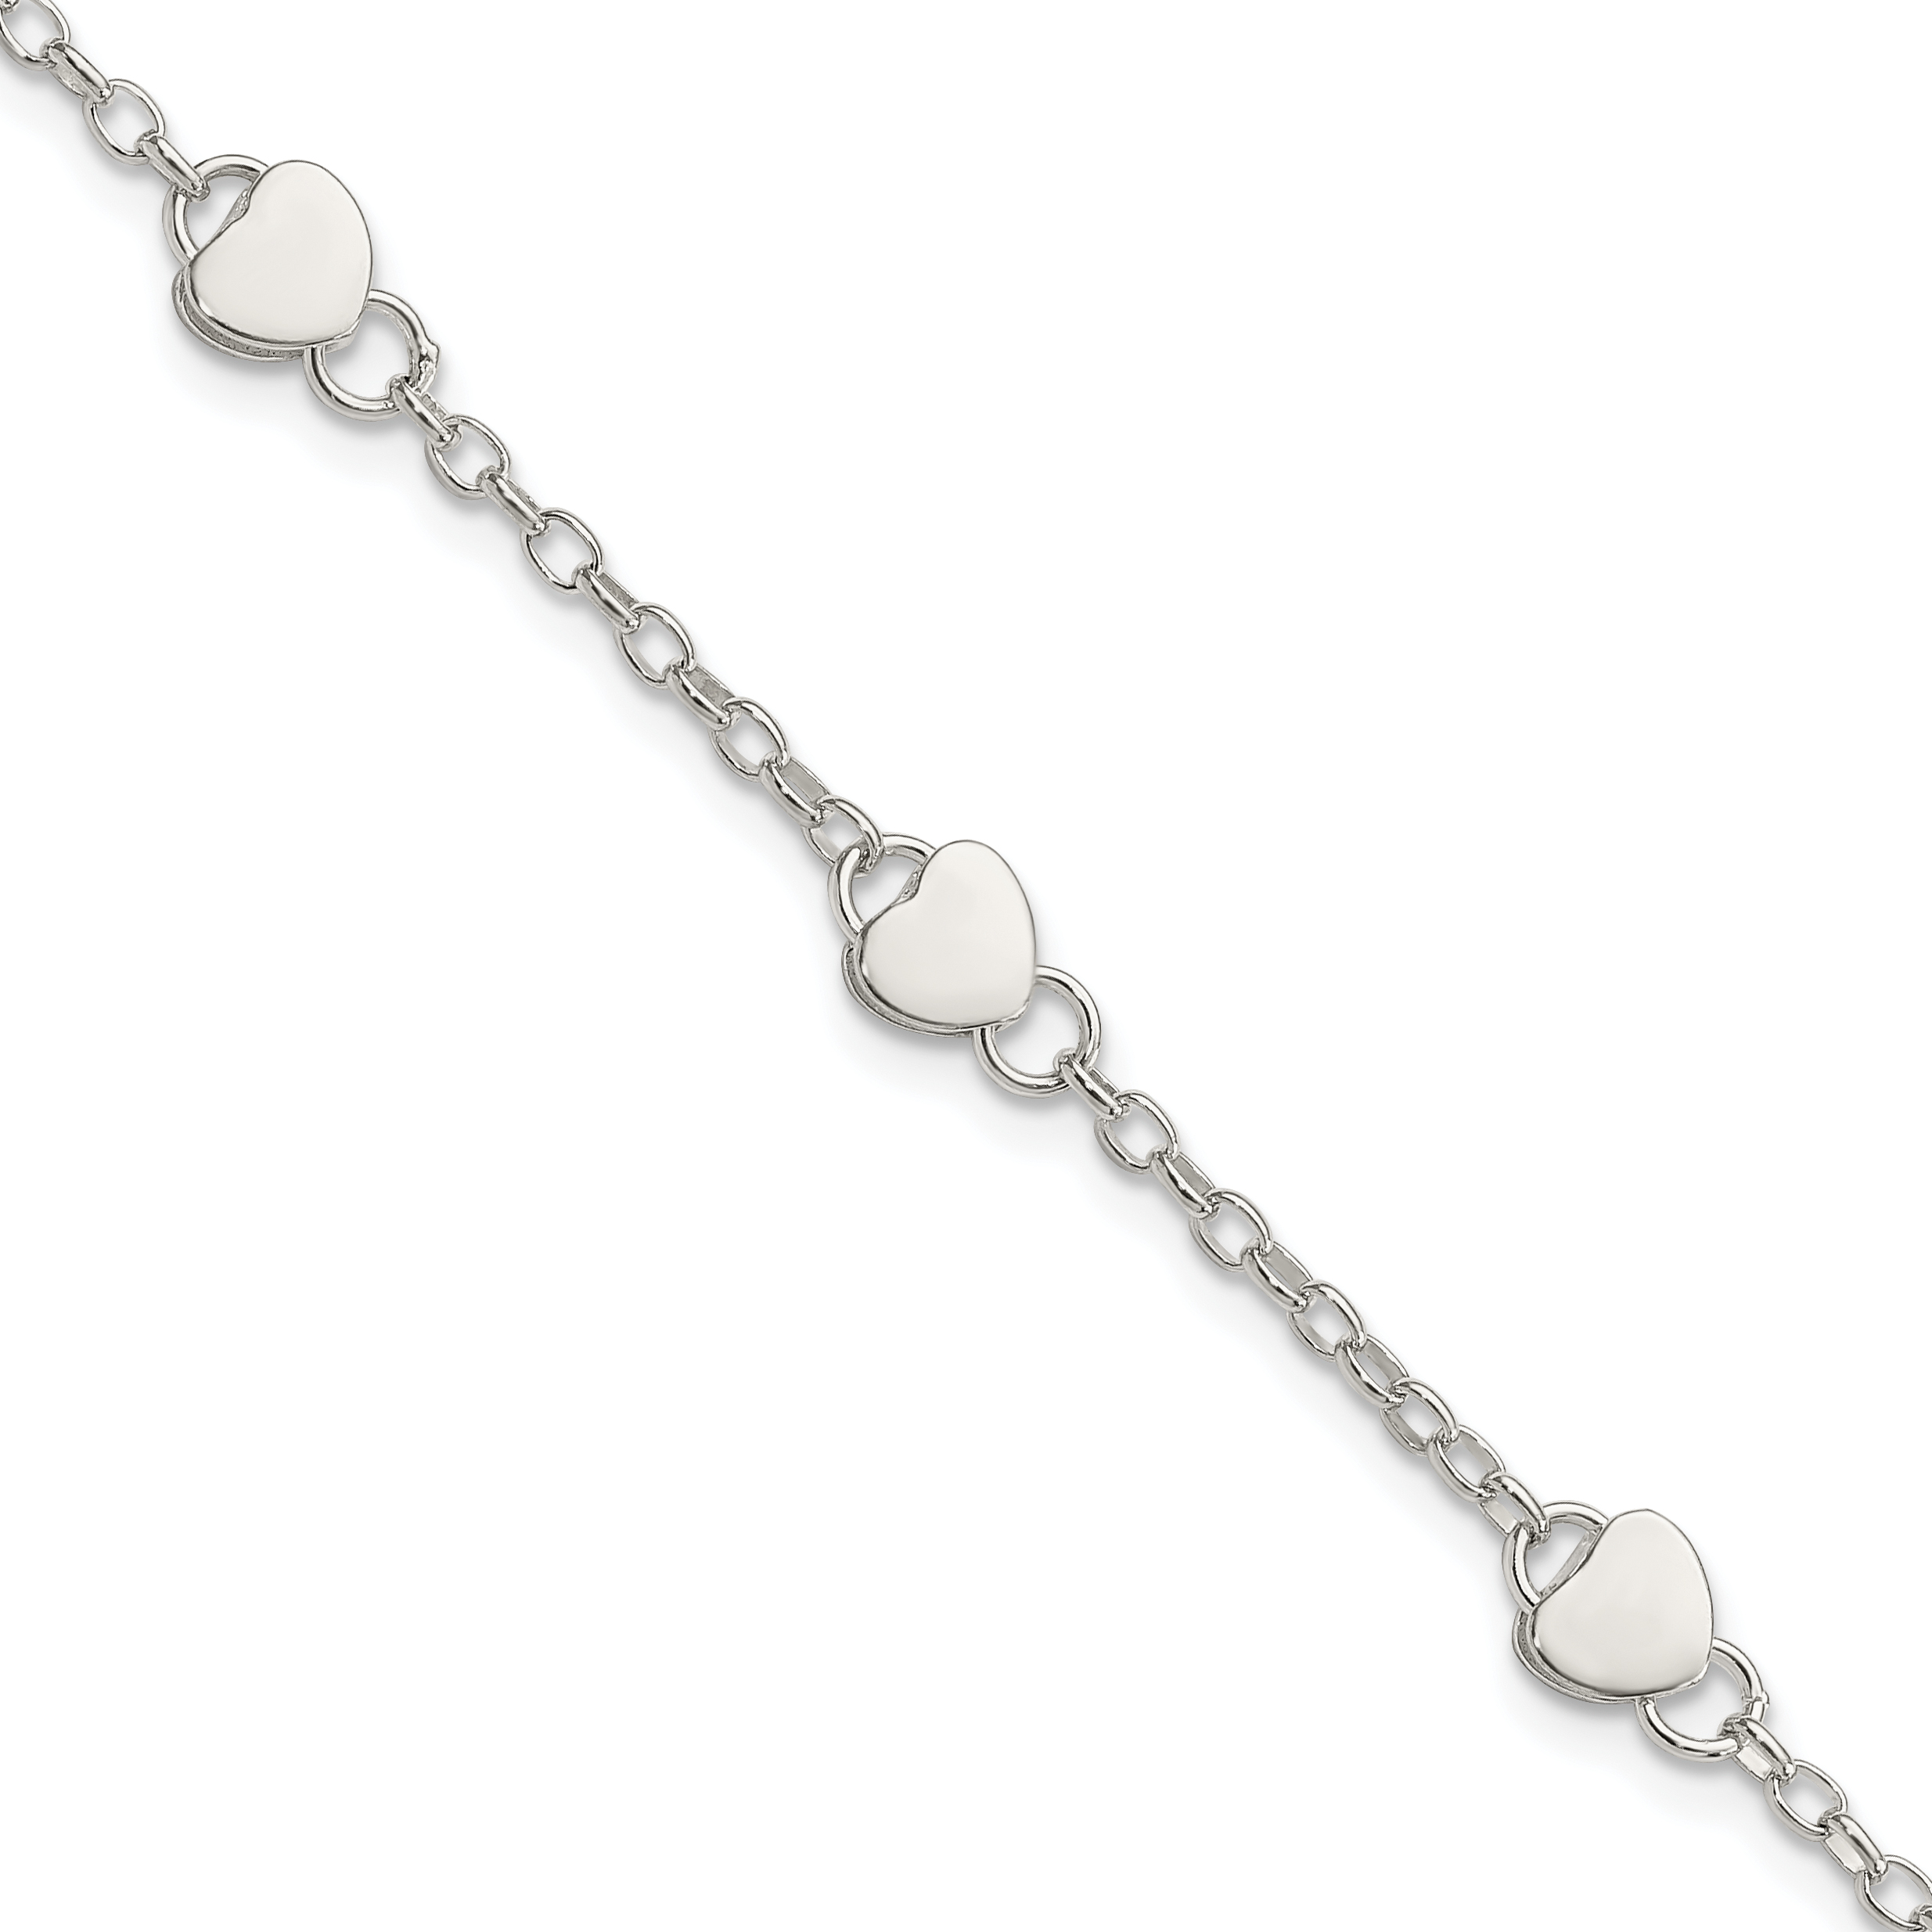 sterling adjustable bracelet charm pattern product heart silver childs large